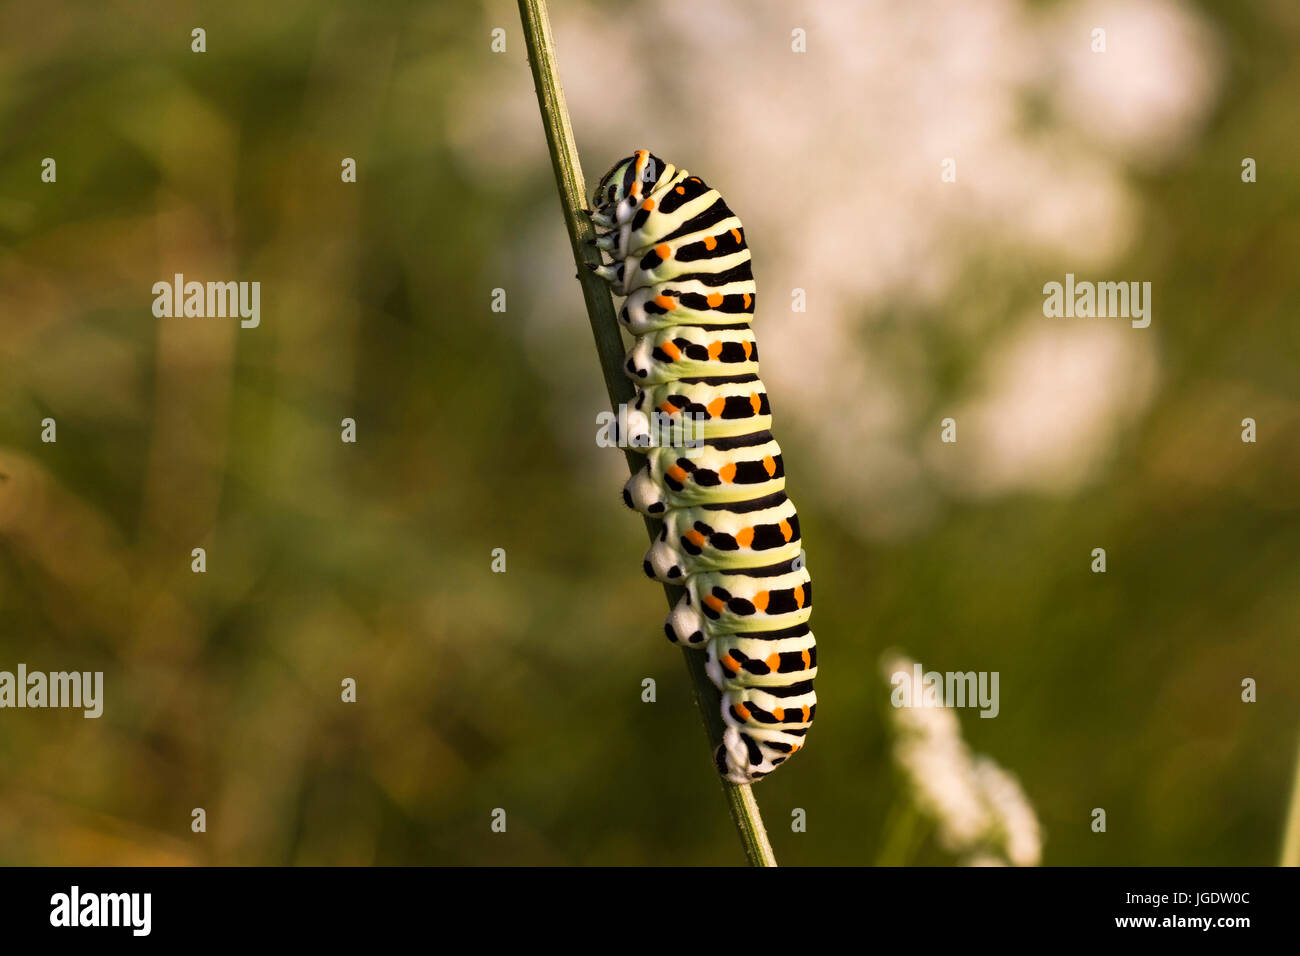 Swallow's tail, Papilio machaon caterpillar, Schwalbenschwanz (Papilio machaon) Raupe - Stock Image